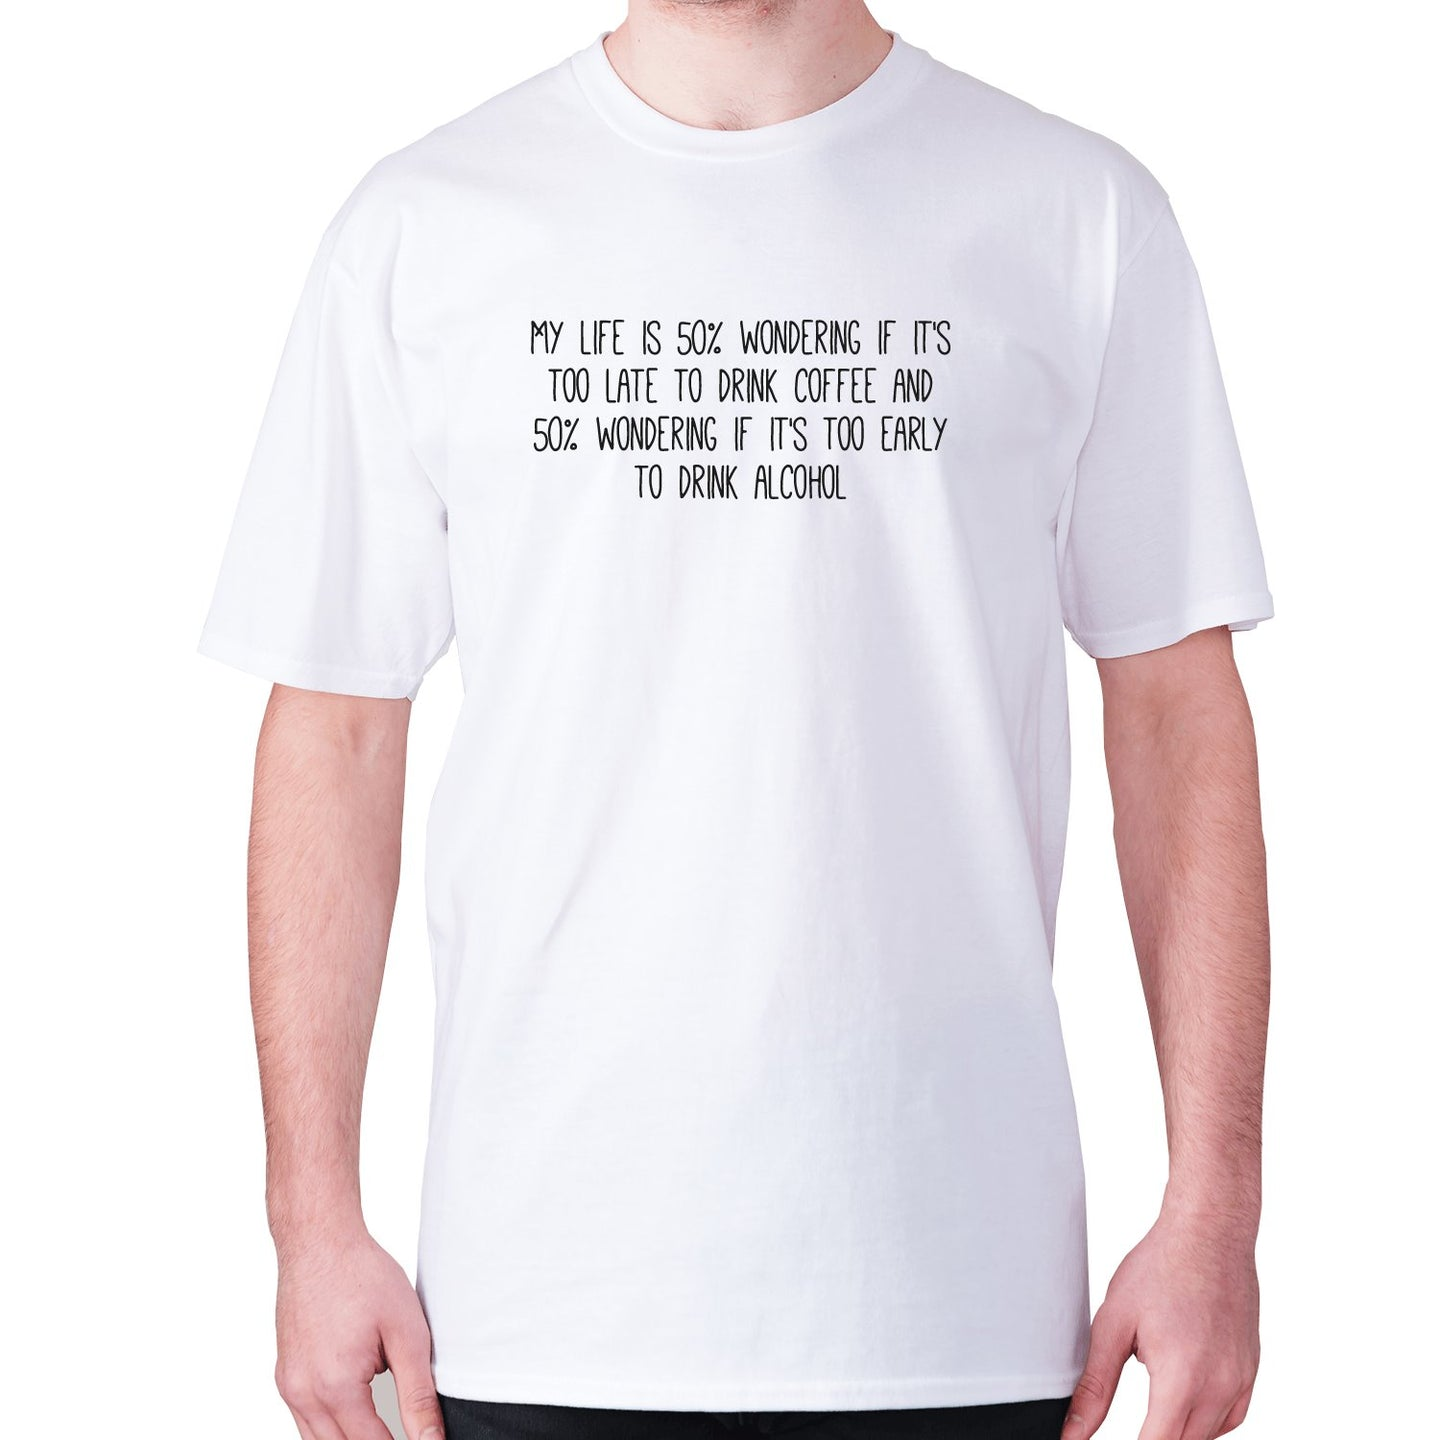 My life is 50% wondering if it's too late to drink coffee and 50% wondering if it's too early to drink alcohol - men's premium t-shirt - White / S - Graphic Gear